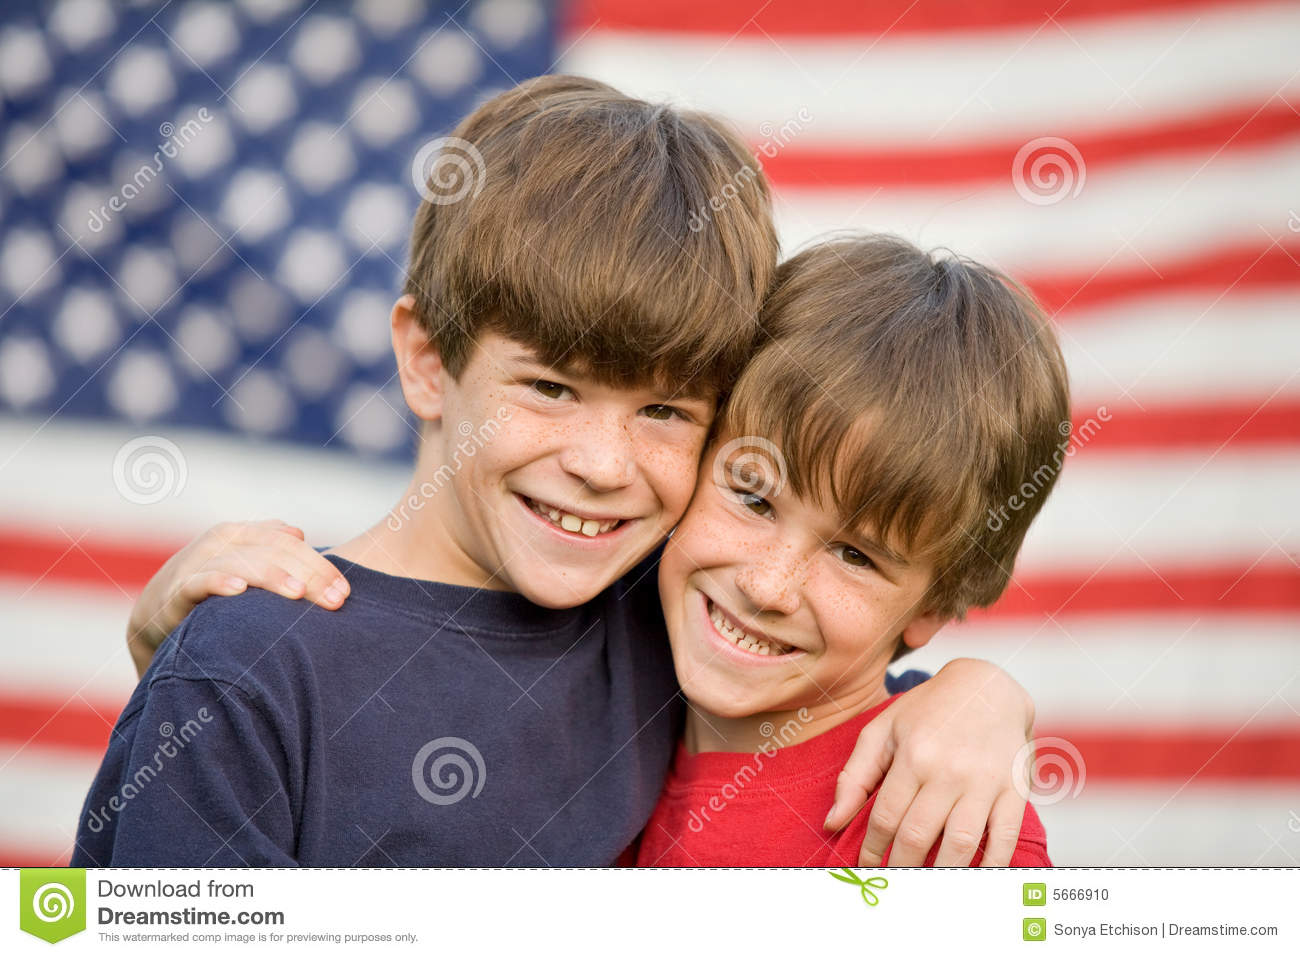 brothers hugging stock photo  image of freckles  background